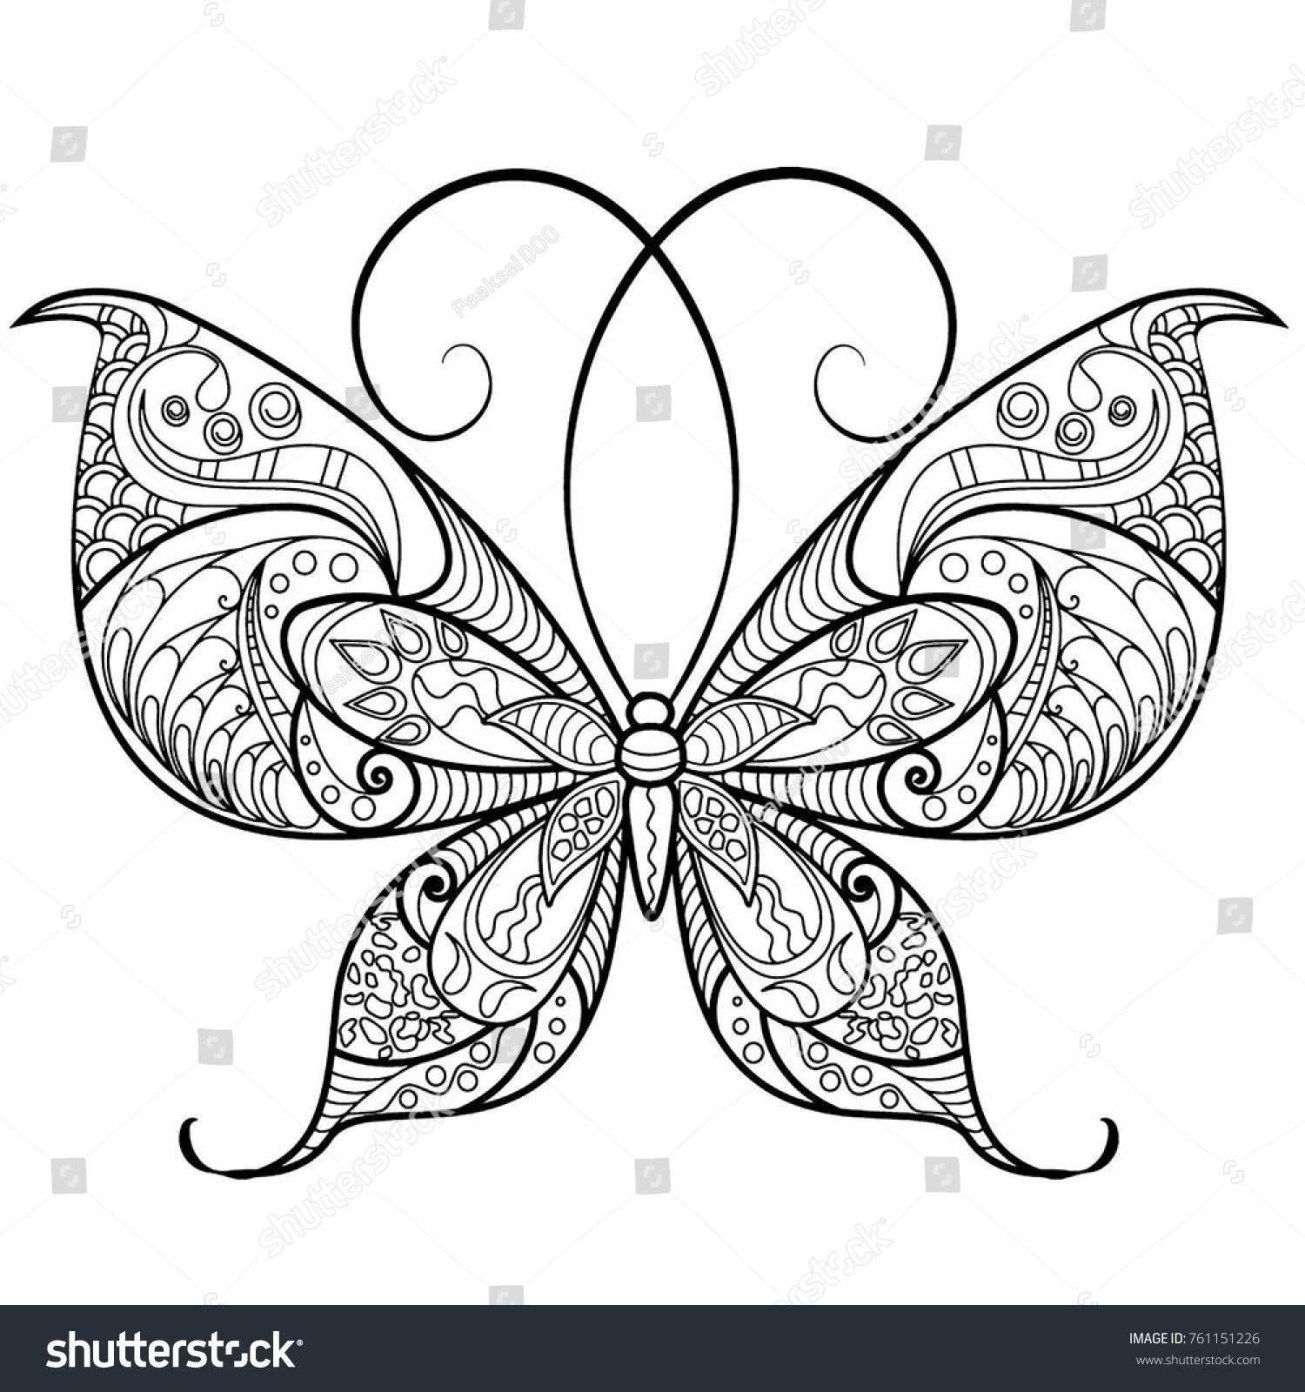 25 Amazing Photo Of Butterflies Coloring Pages Davemelillo Com Butterfly Coloring Page Insect Coloring Pages Butterfly Printable [ 1392 x 1305 Pixel ]